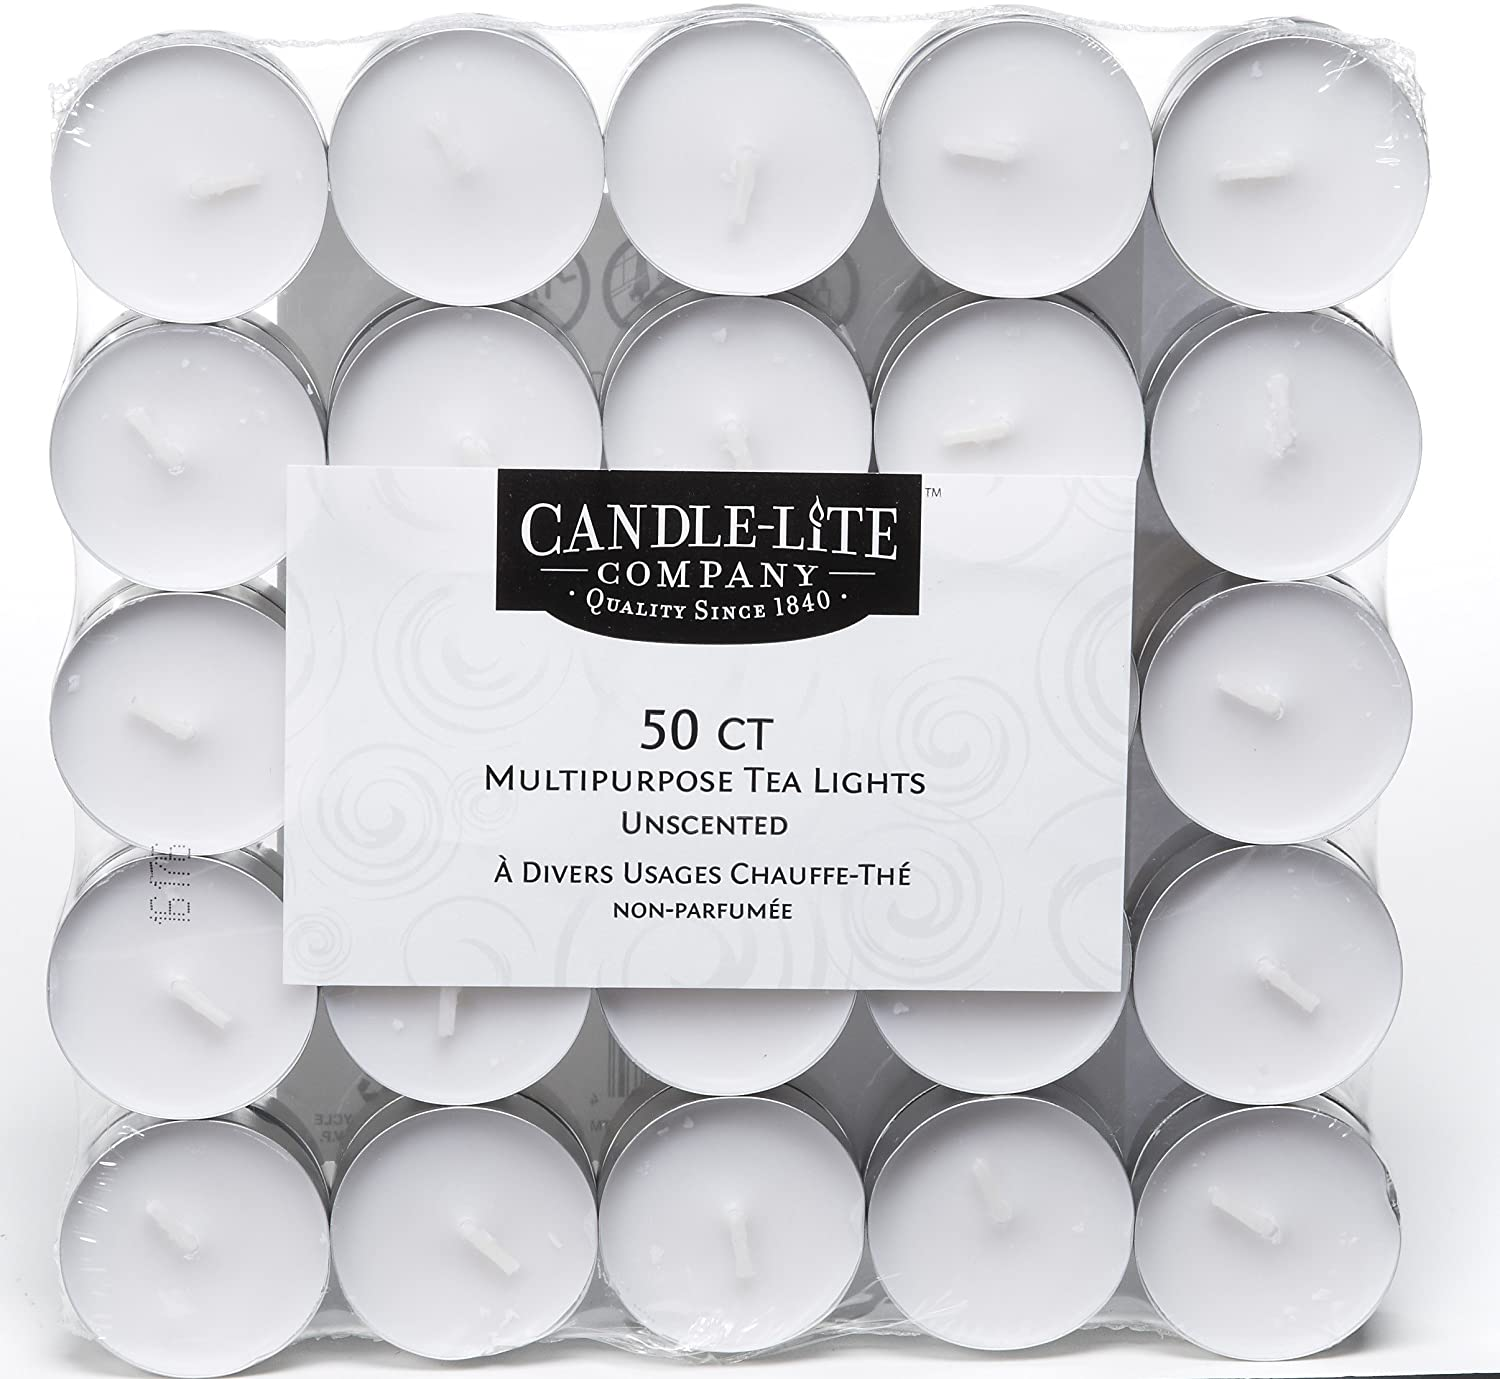 Bag of 50 White Candle-Lite 1261595 Unscented Tea Light